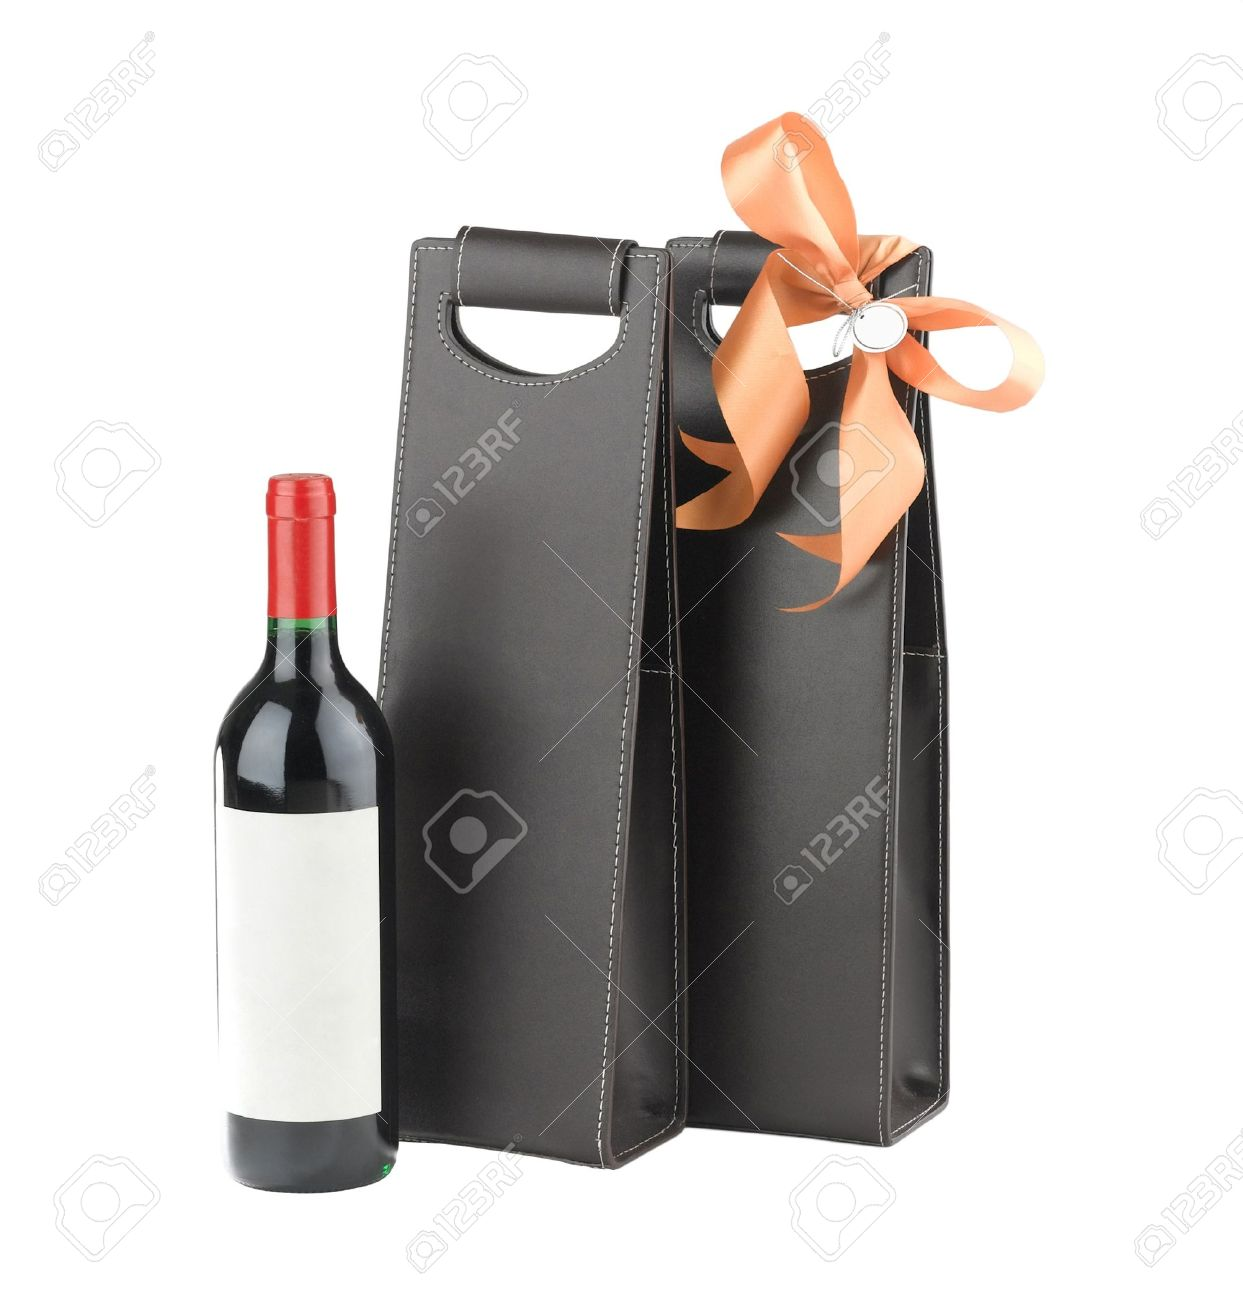 A luxury leather wine bag and wine bottle ready to gift to someone Stock Photo - 16658288